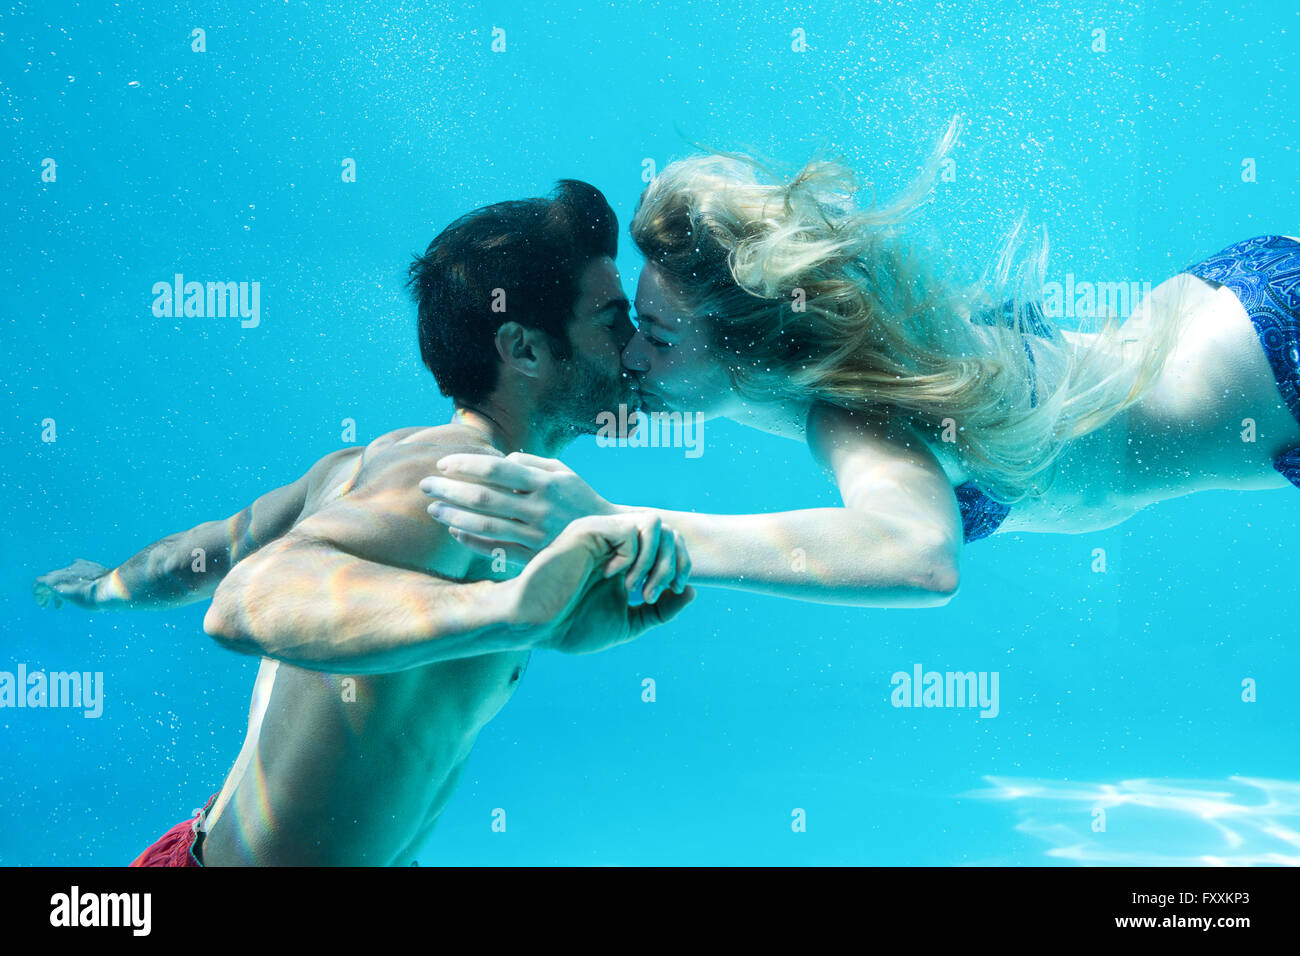 Sous l'heureux couple kissing Photo Stock